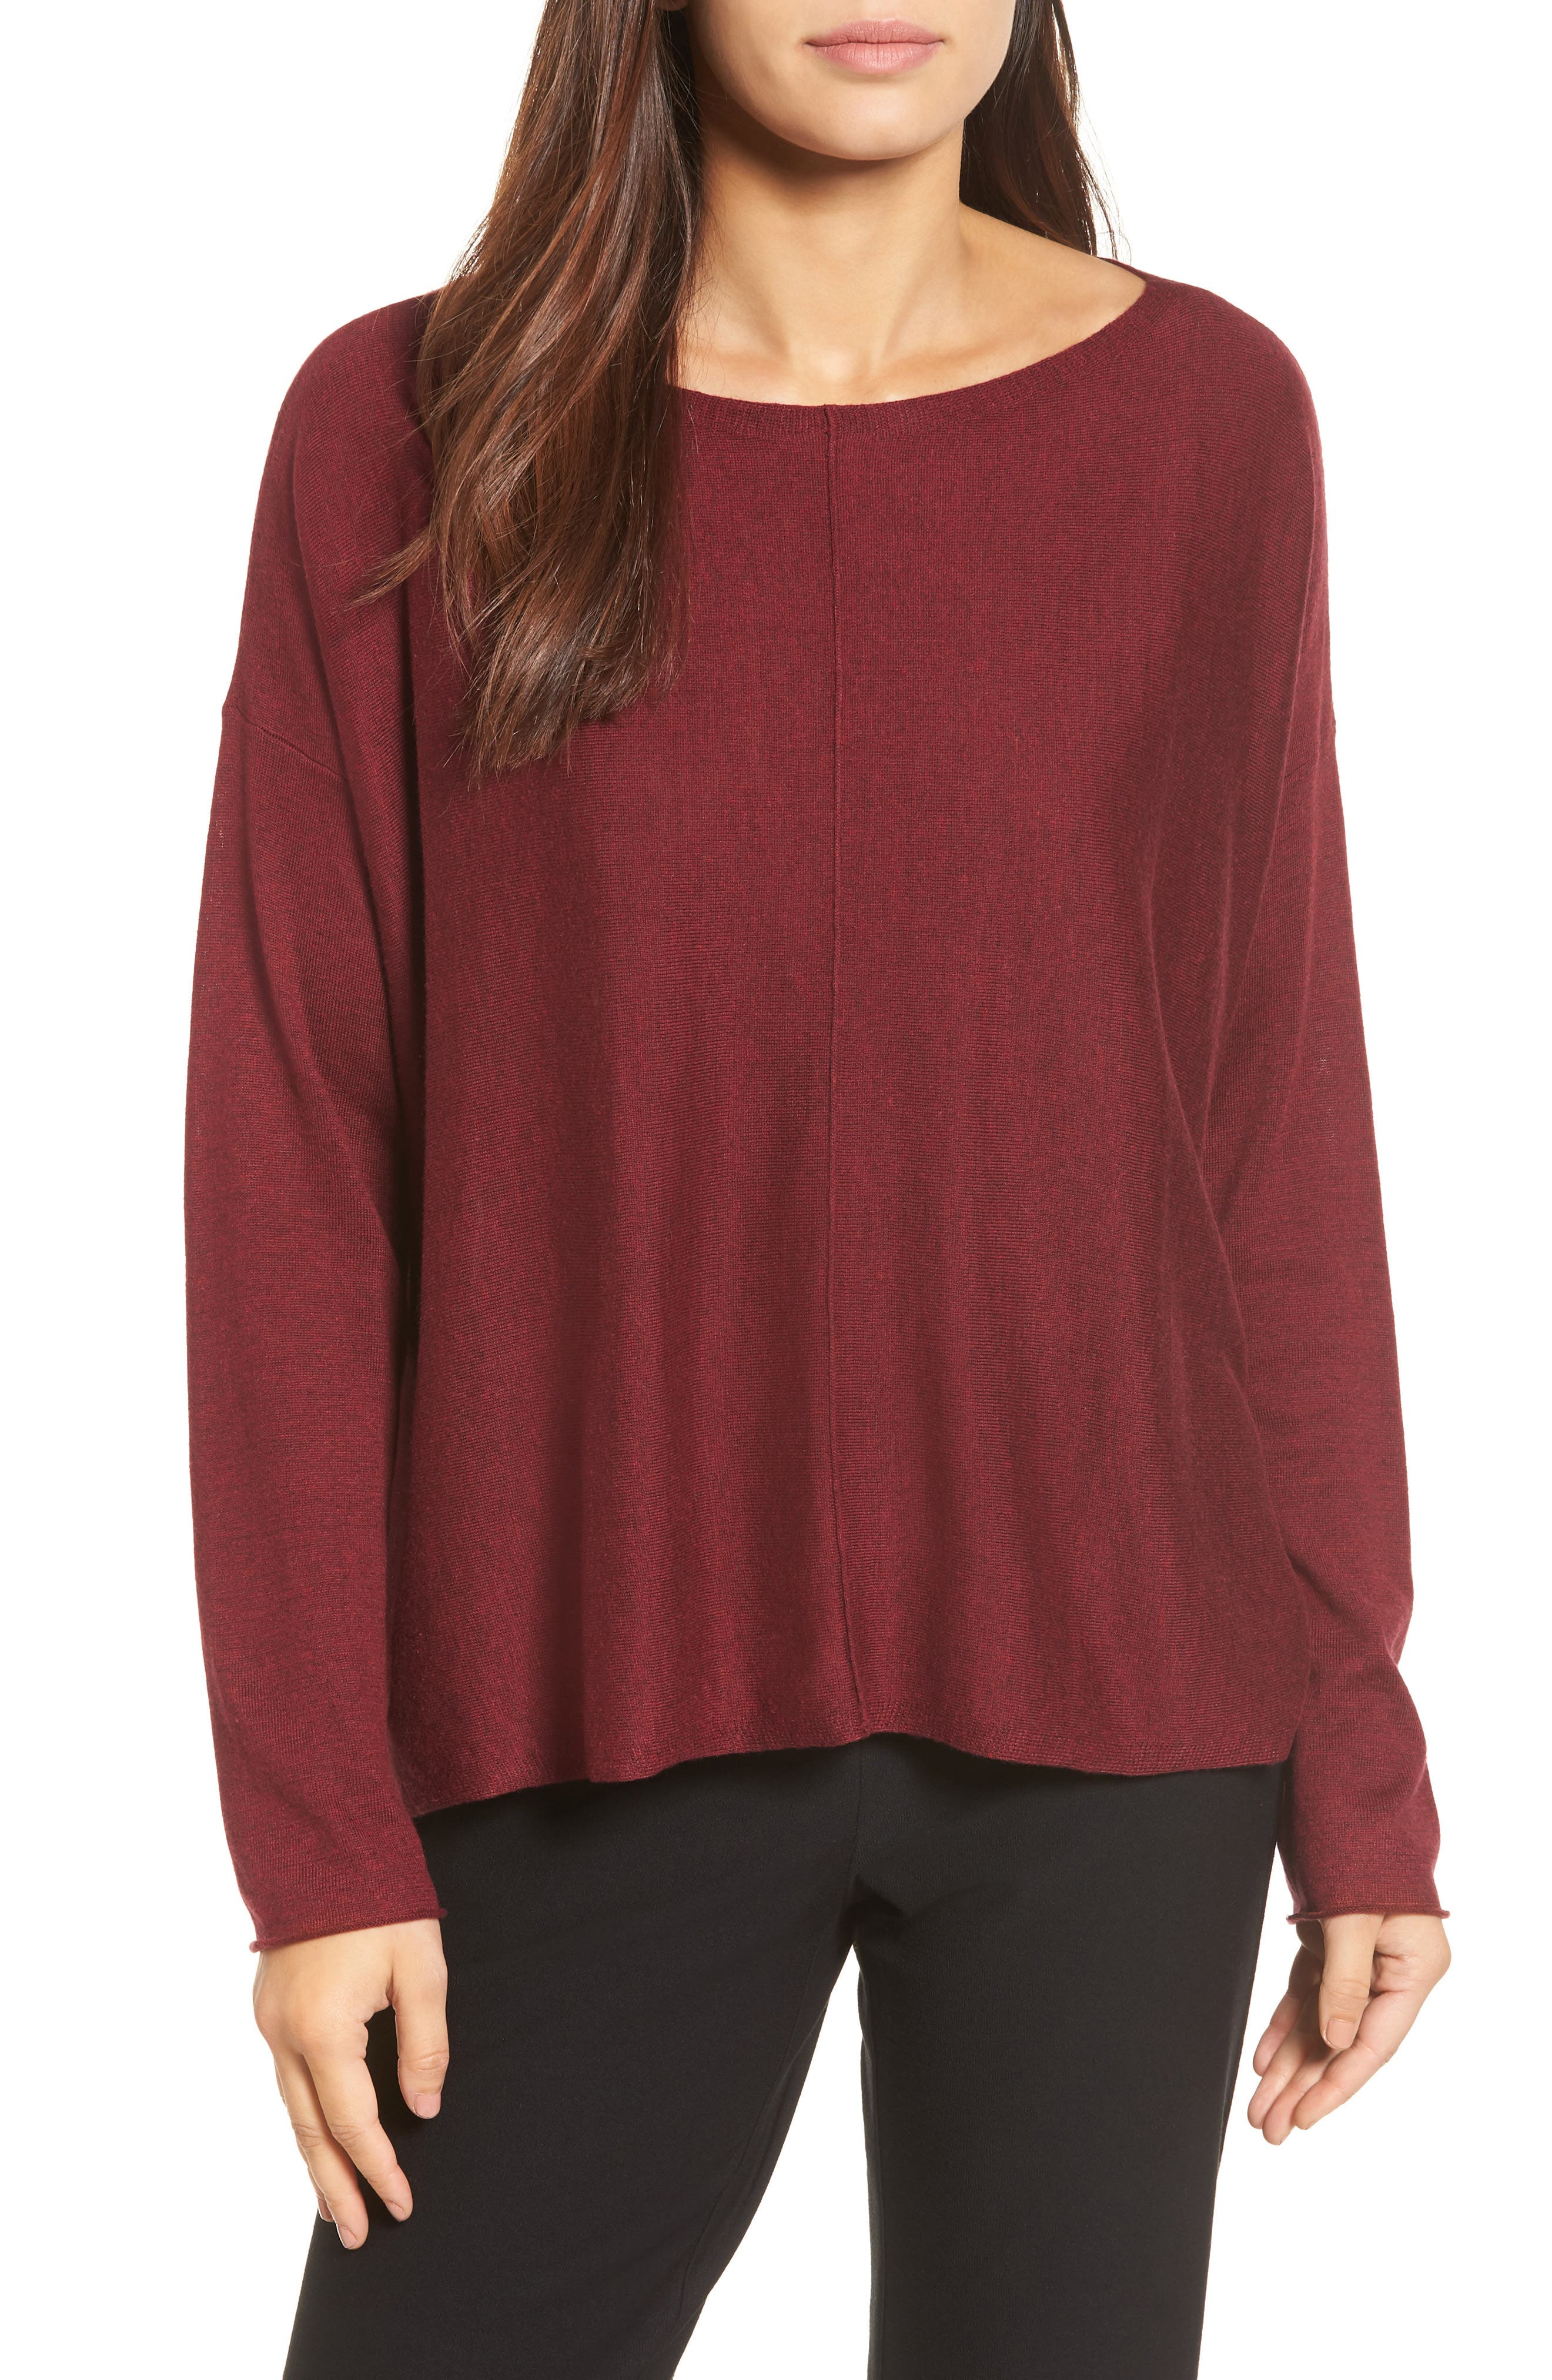 Tencel<sup>®</sup> Lyocell Blend High/Low Sweater,                             Main thumbnail 6, color,